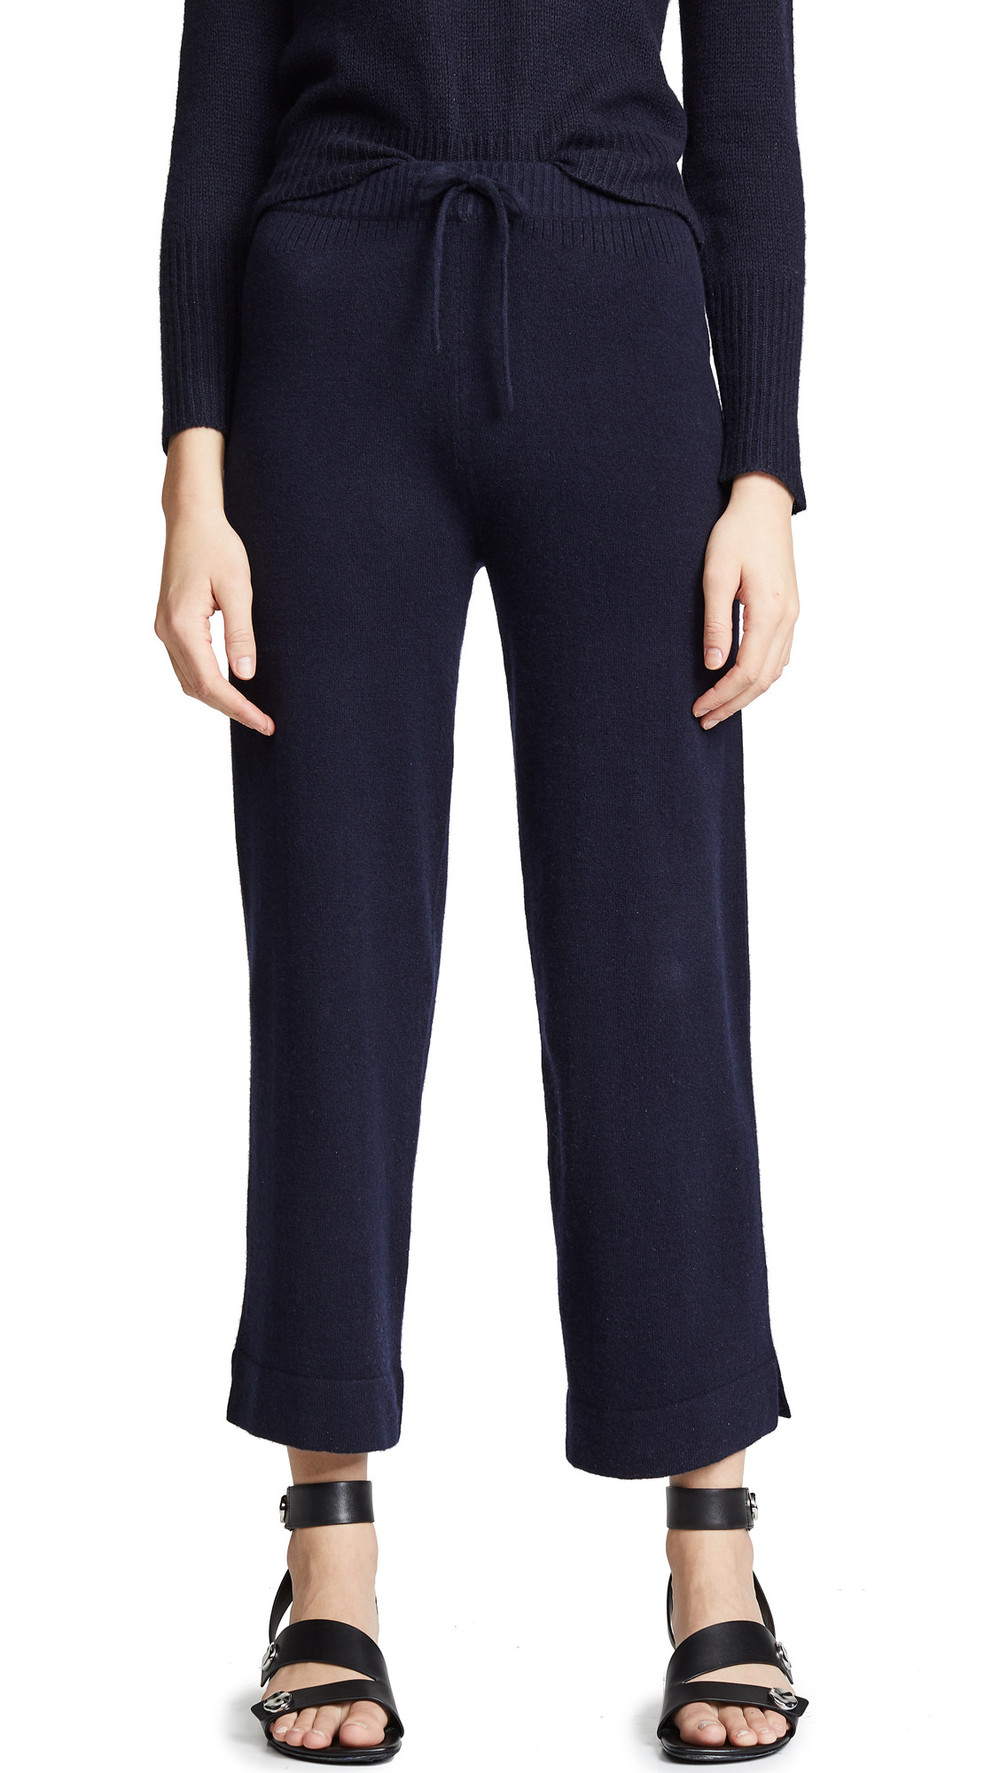 M.PATMOS Didion Cashmere Pants in navy